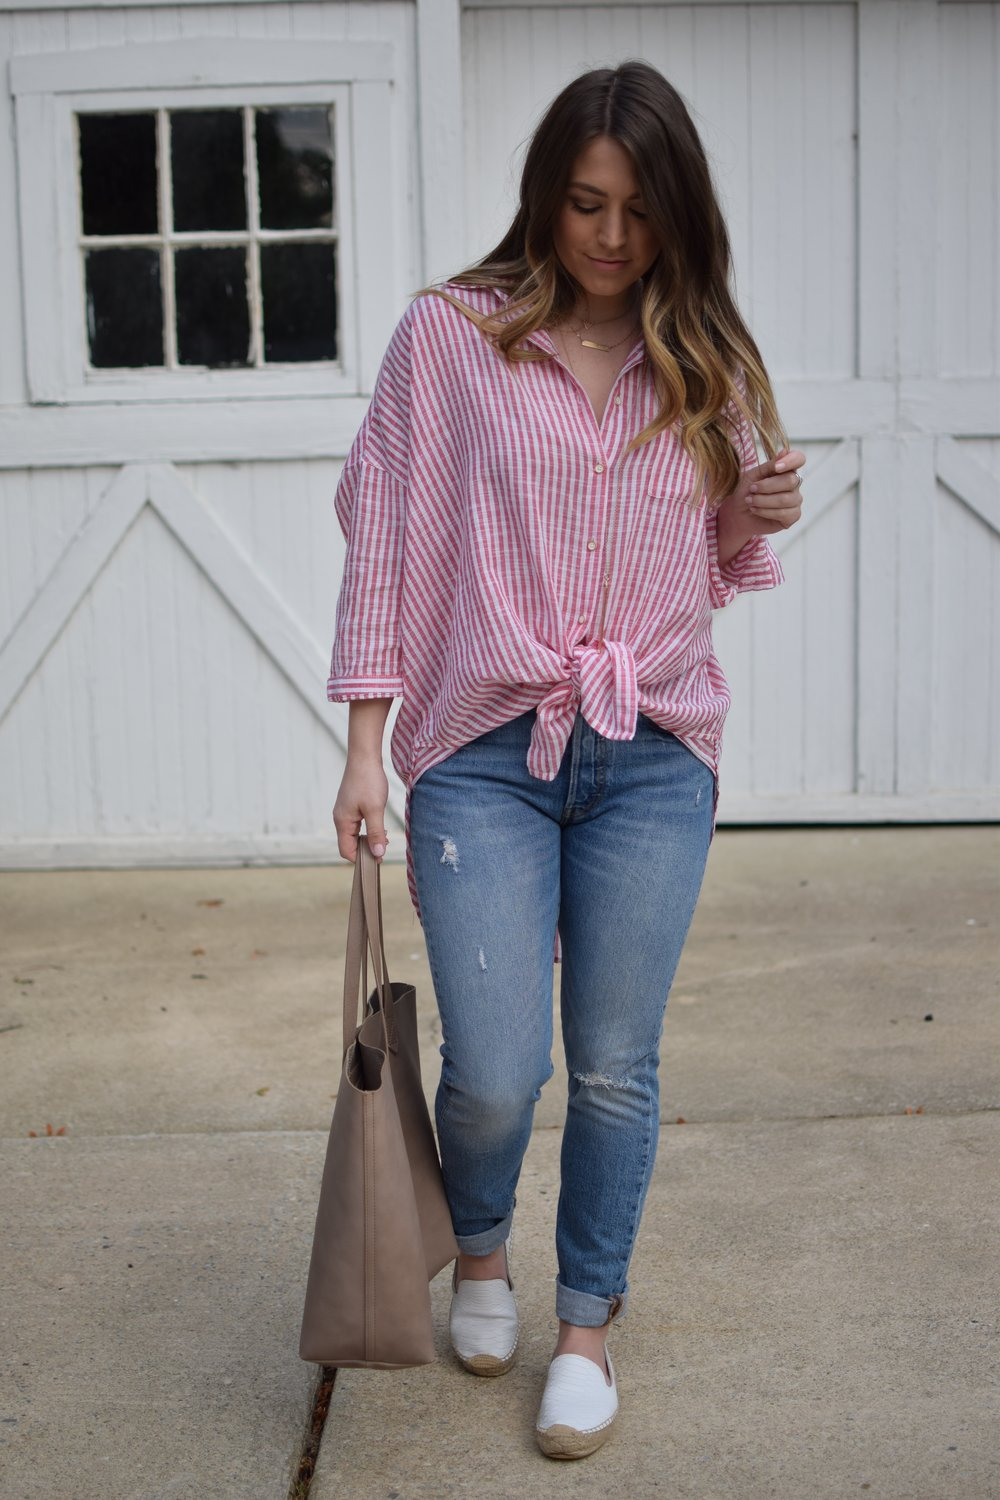 red & white striped top / high waisted denim / white espadrilles / summer outfit idea